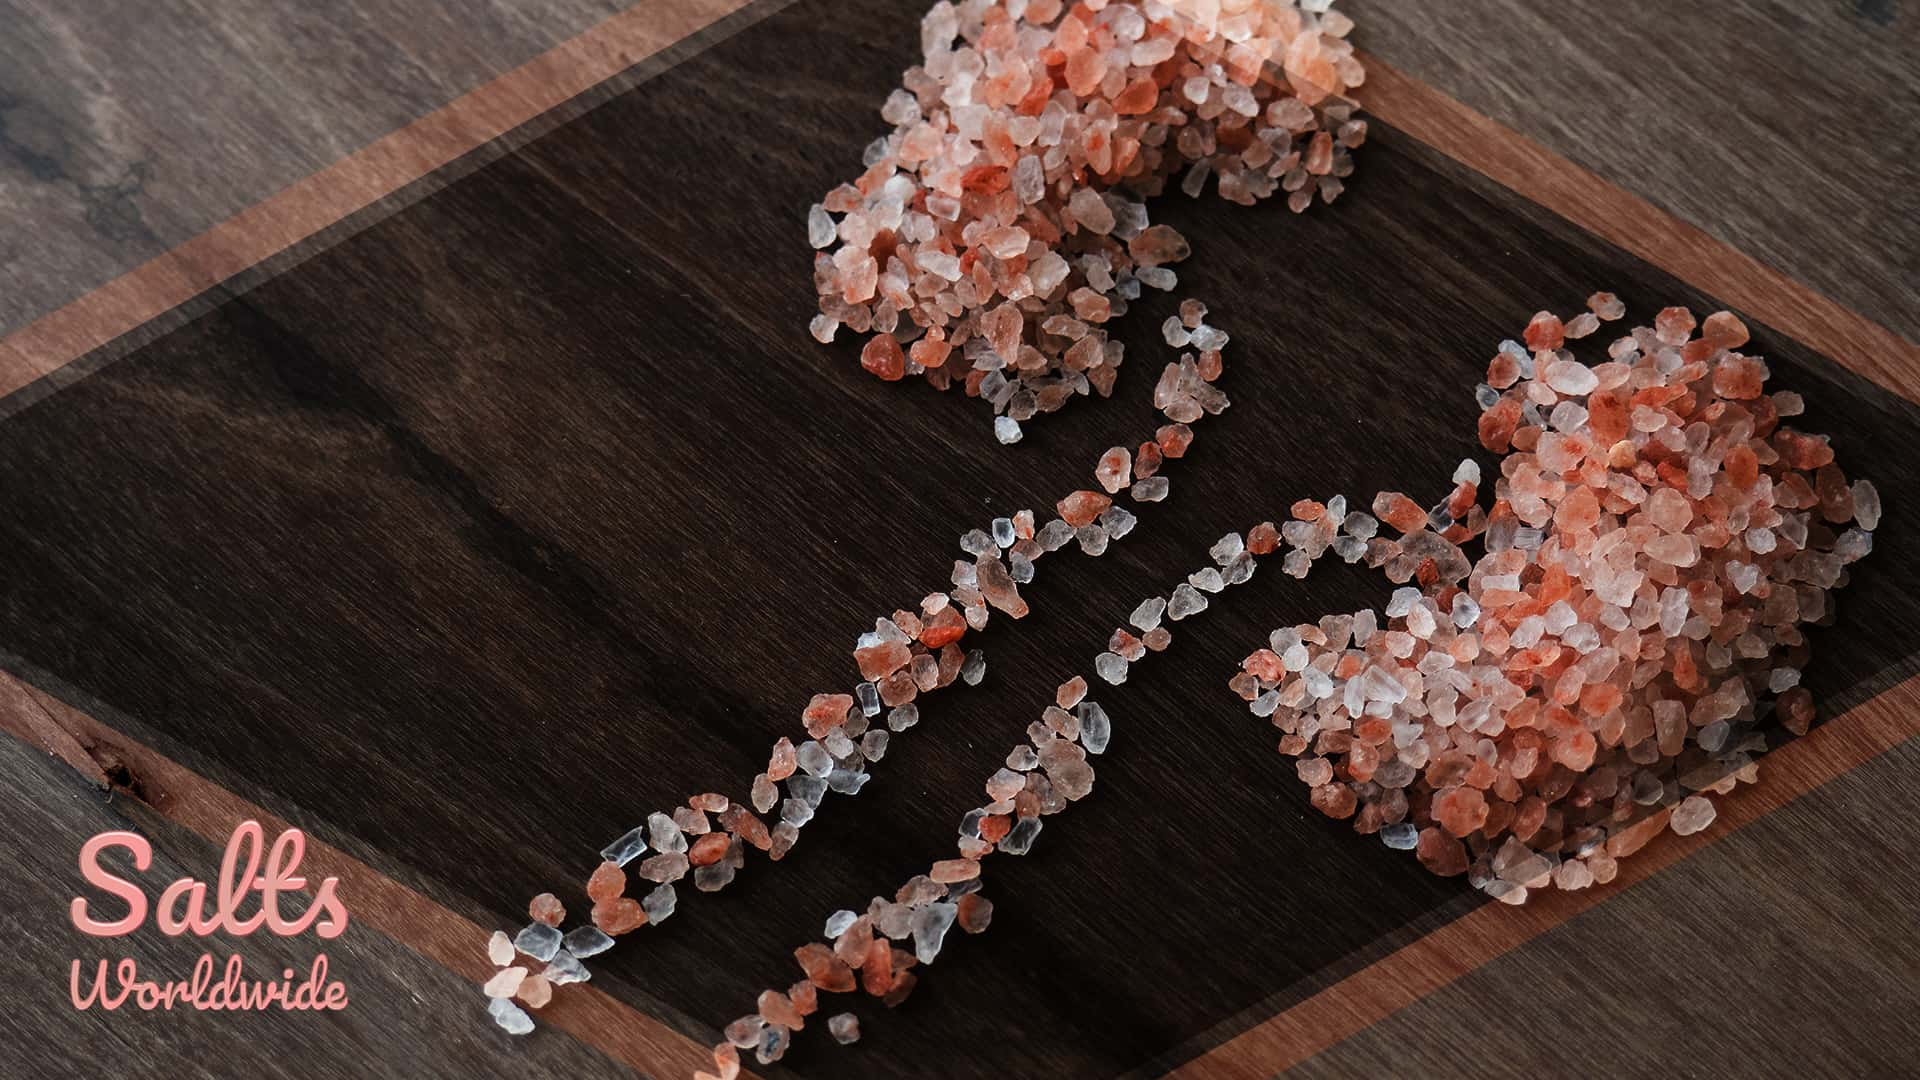 Is Himalayan Salt Bad For You - Himalayan salt is useful for your mind and body